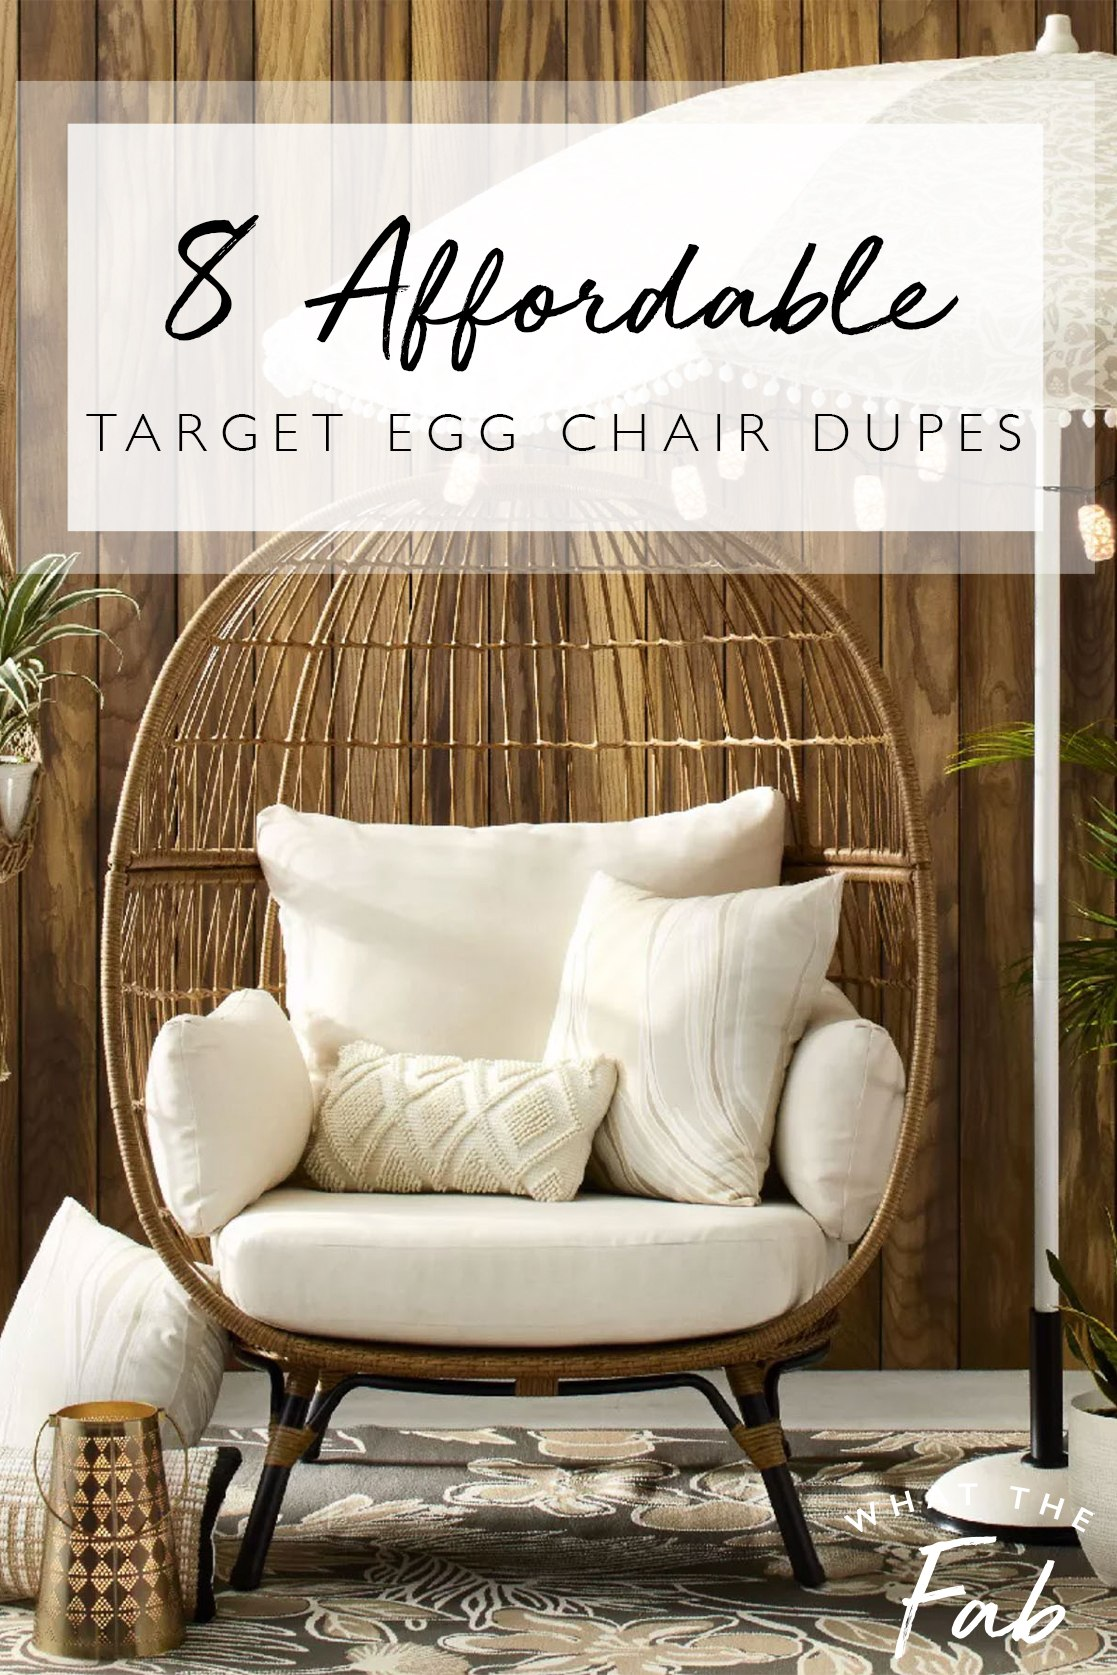 target egg chair and affordable egg chair dupes, by lifestyle blogger What The Fab